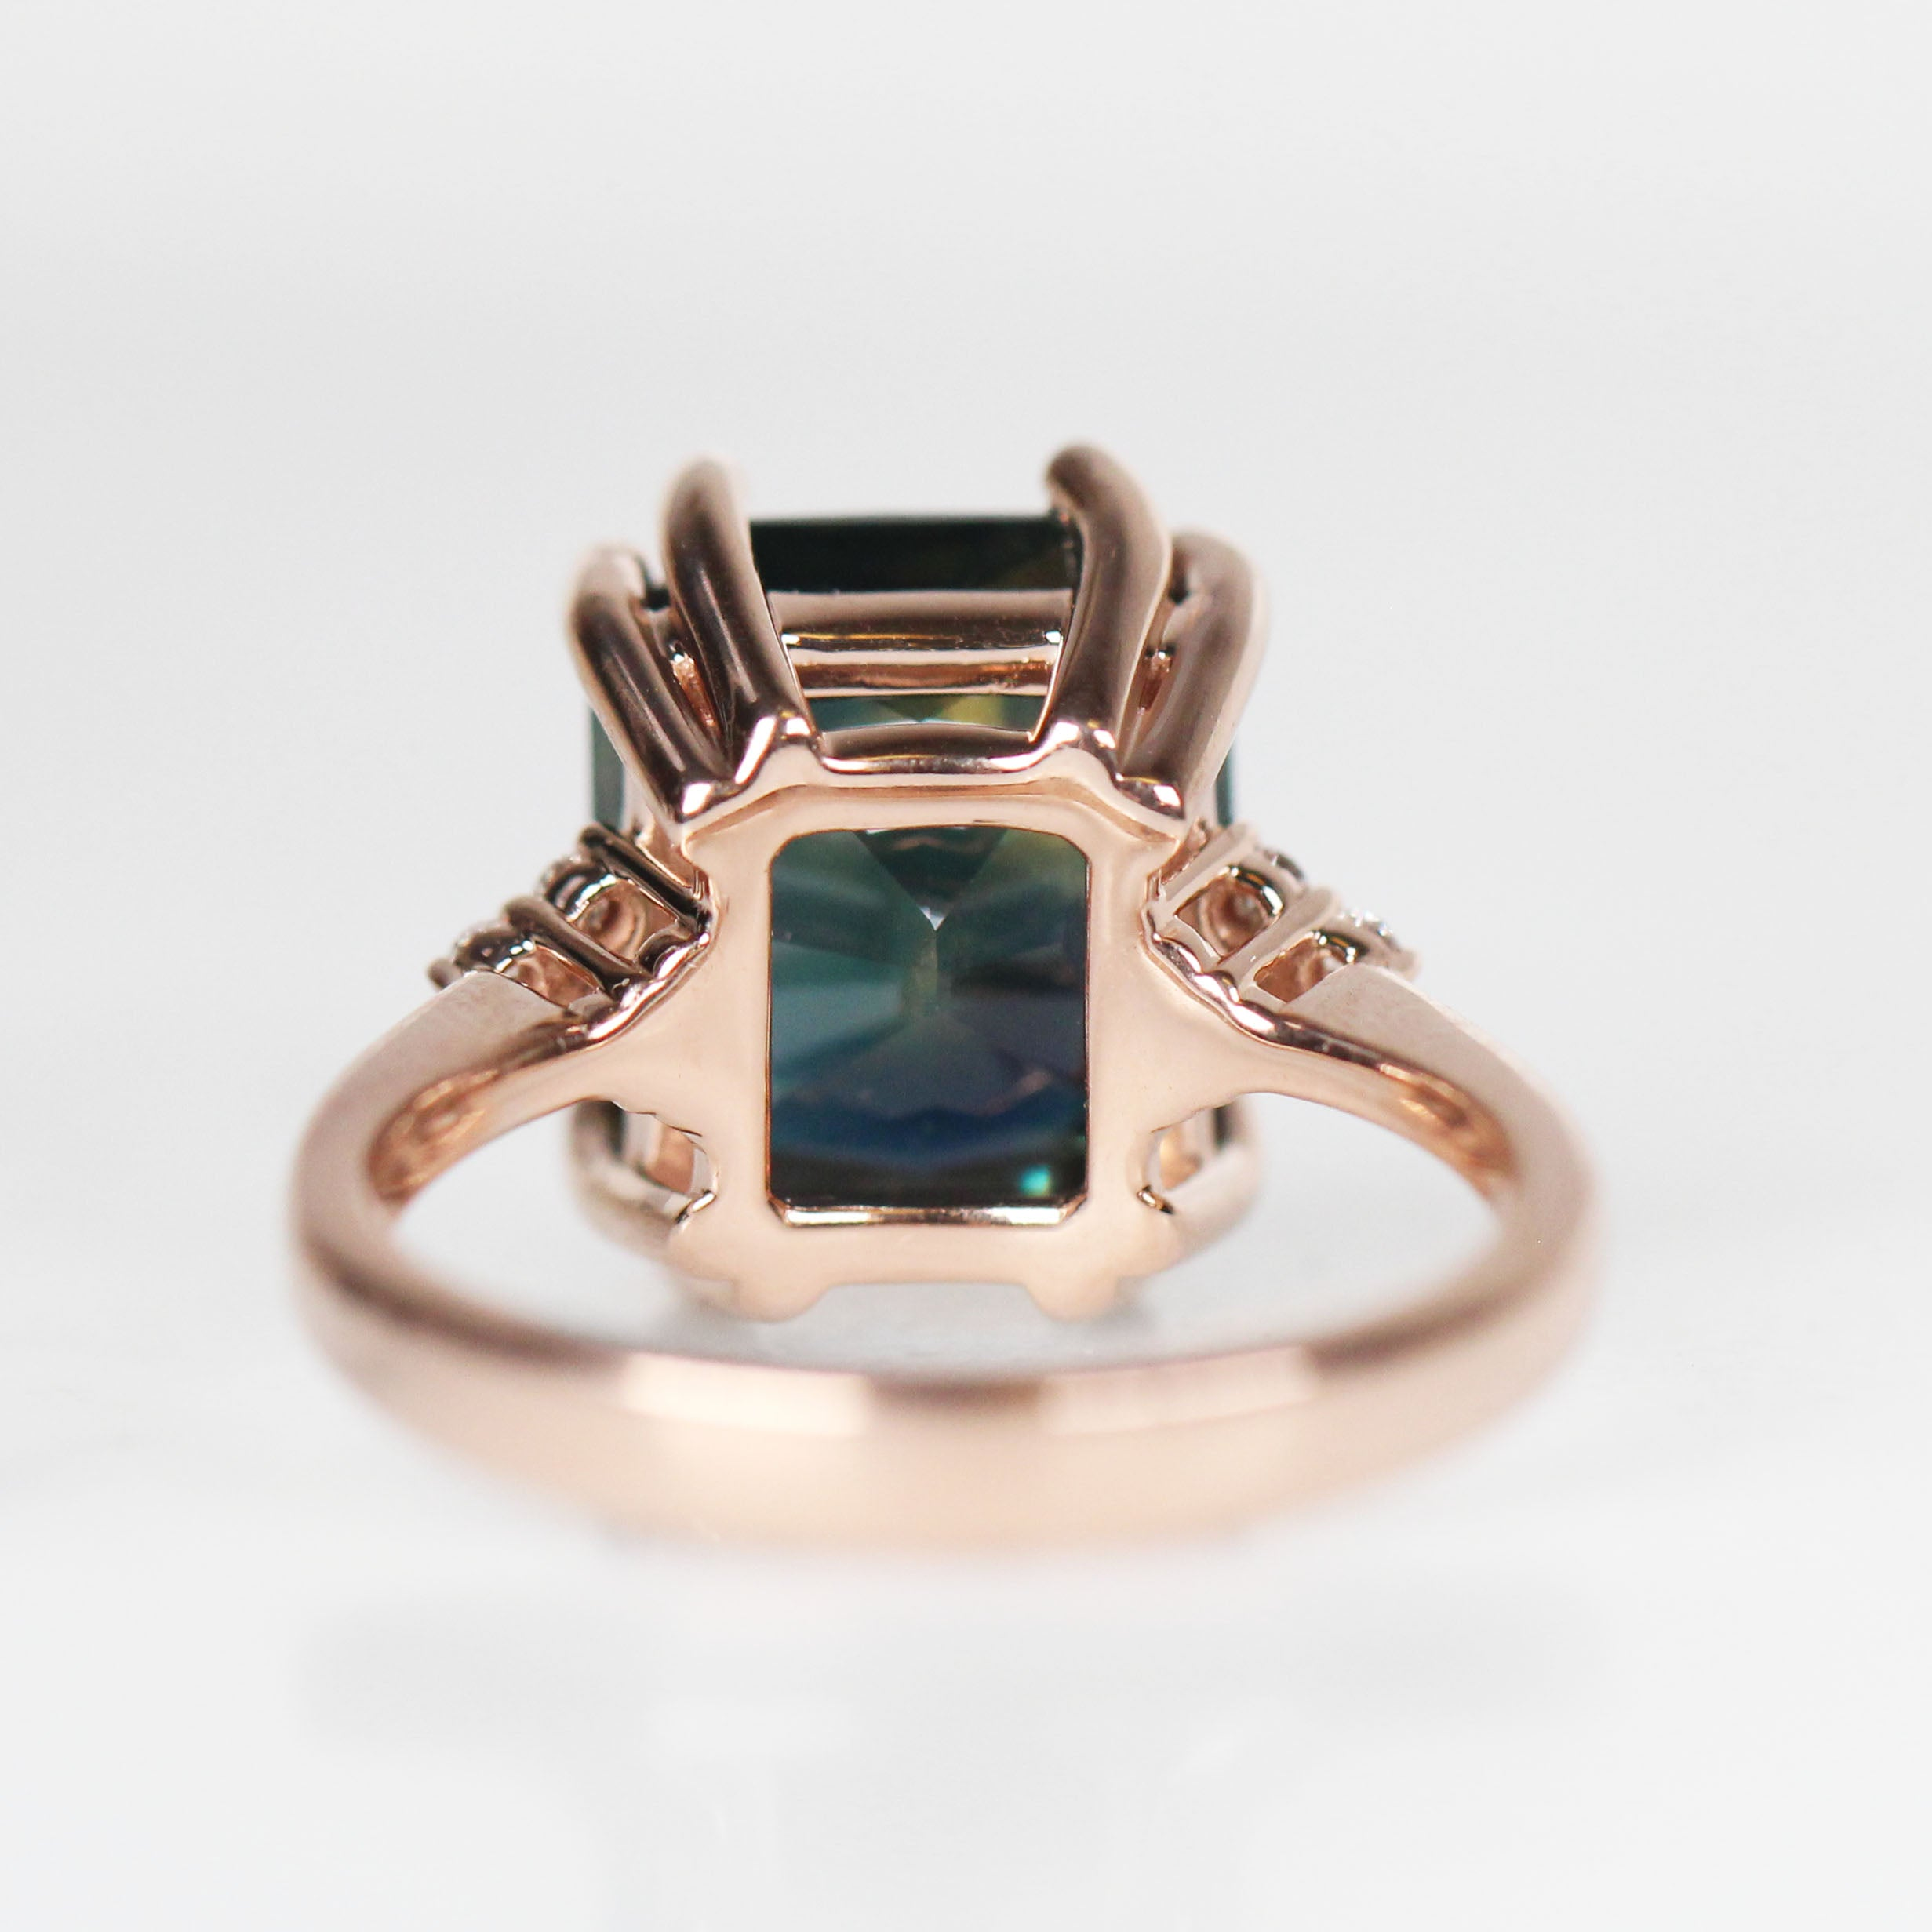 Octagon Sapphire Imogene Ring + Band set with 9.22 Carat Sapphire GIA + Lifetime Care Plan - 14k Rose Gold - Ready to Size and Ship - Celestial Diamonds ® by Midwinter Co.